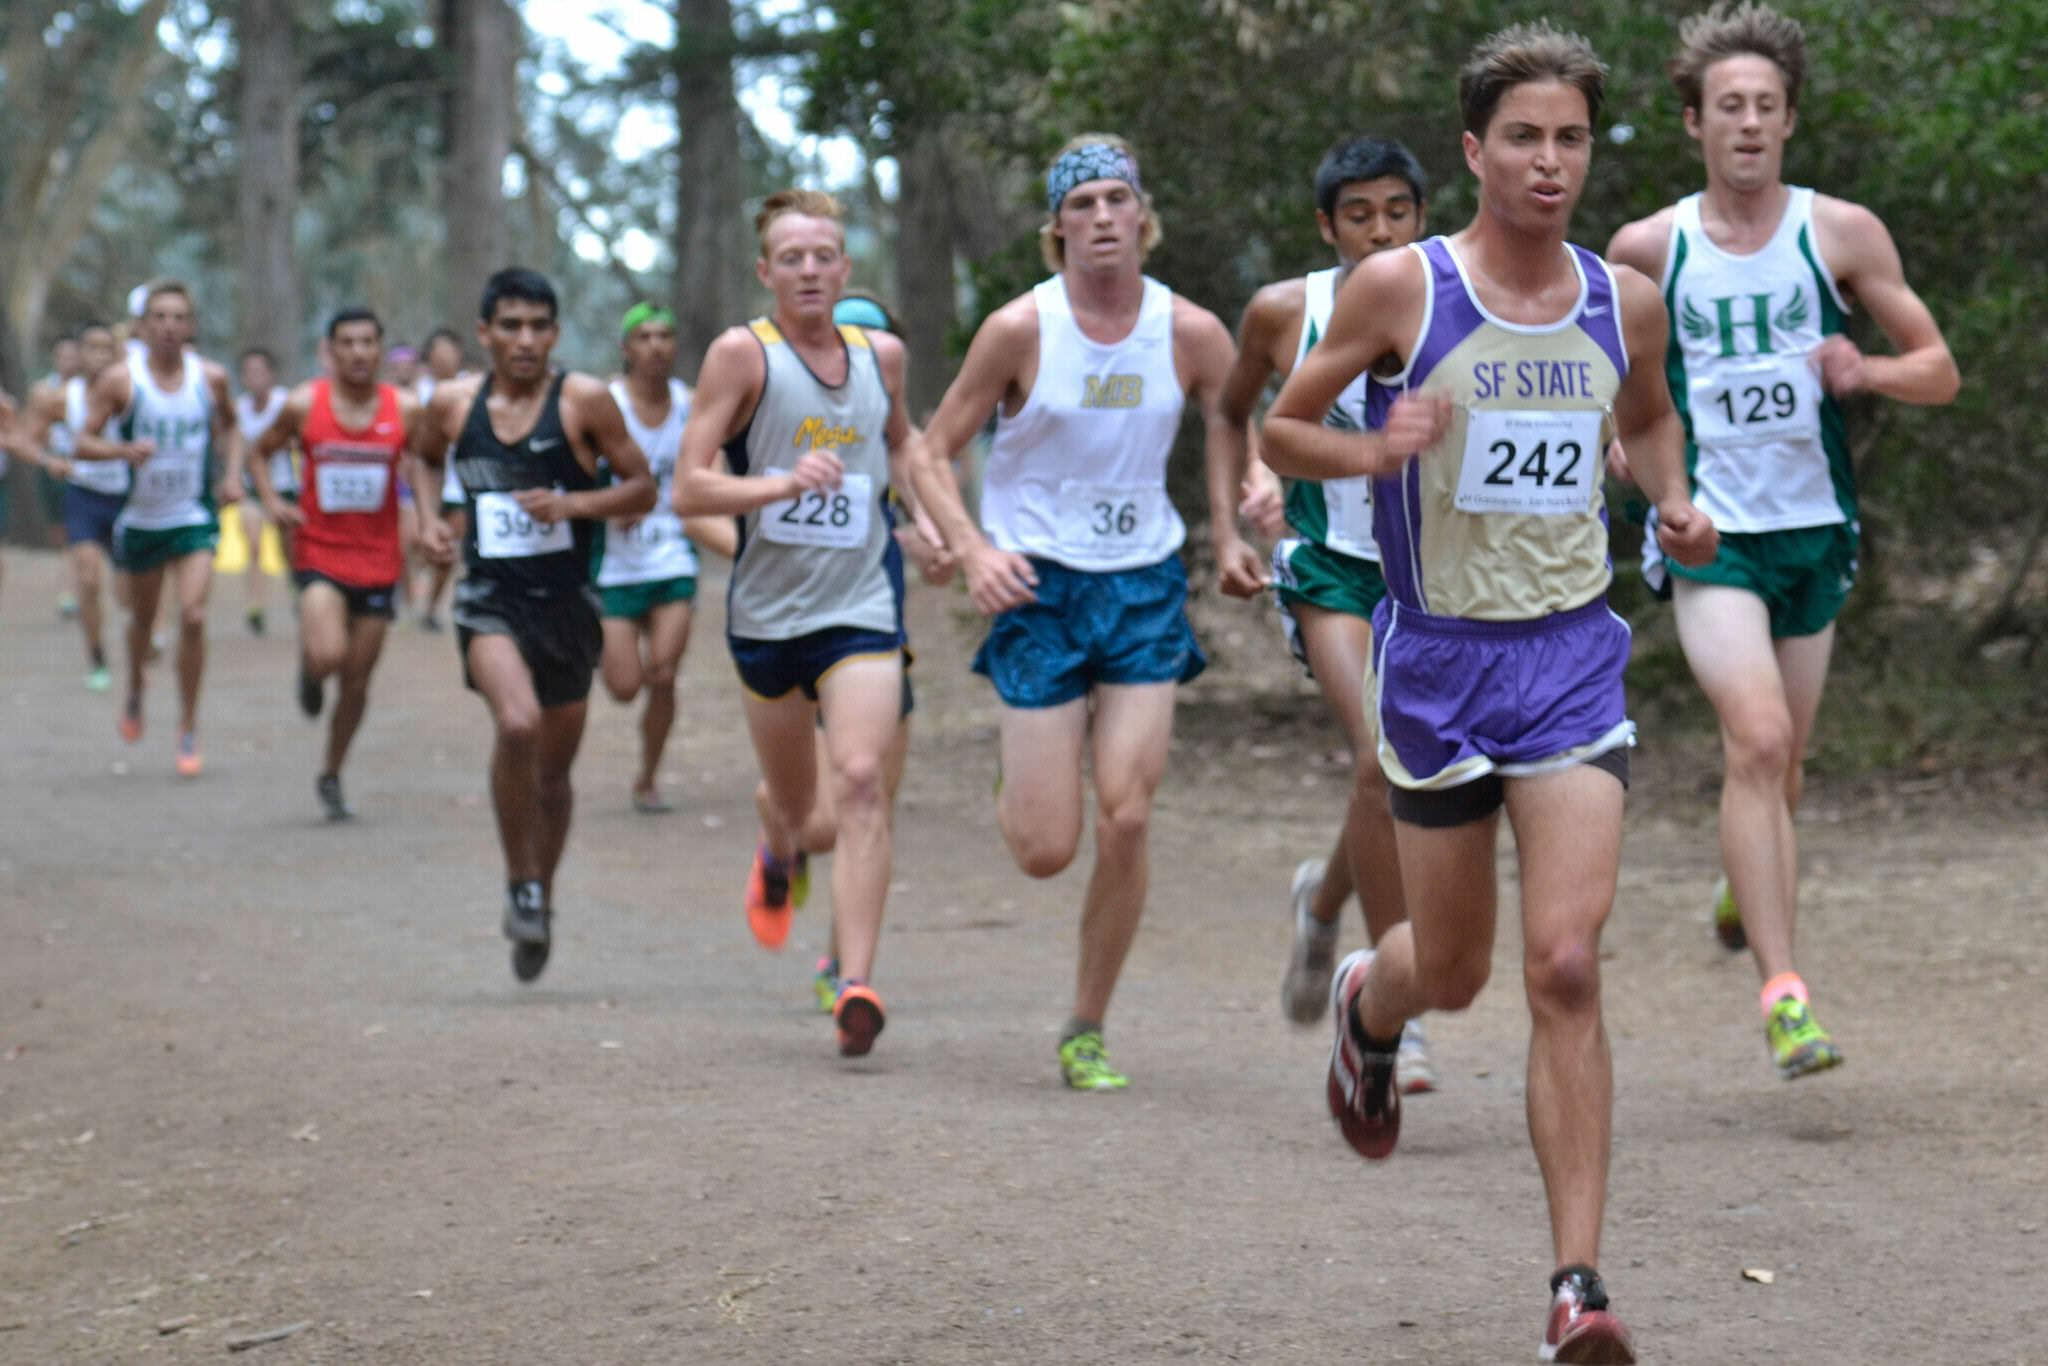 Michael Garaventa leads a pack during the cross country invitational at Speedway Meadow in Golden Gate Park Friday, Oct. 10, 2014.